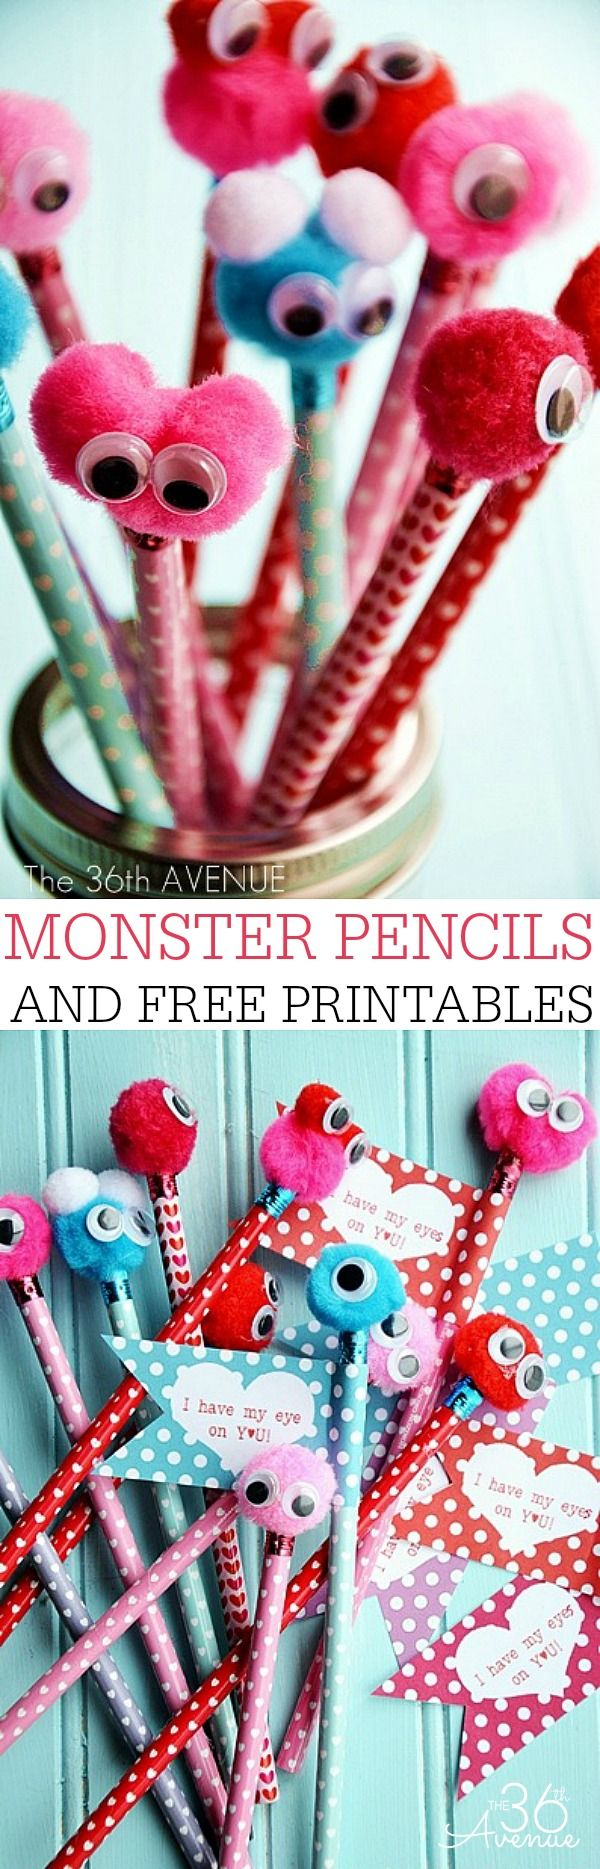 "Monster Pencil Tutorial and FREE ""I have my eyes on you"" PRINTABLES! Find it HERE : http://www.the36thavenue.com/?p=11162"